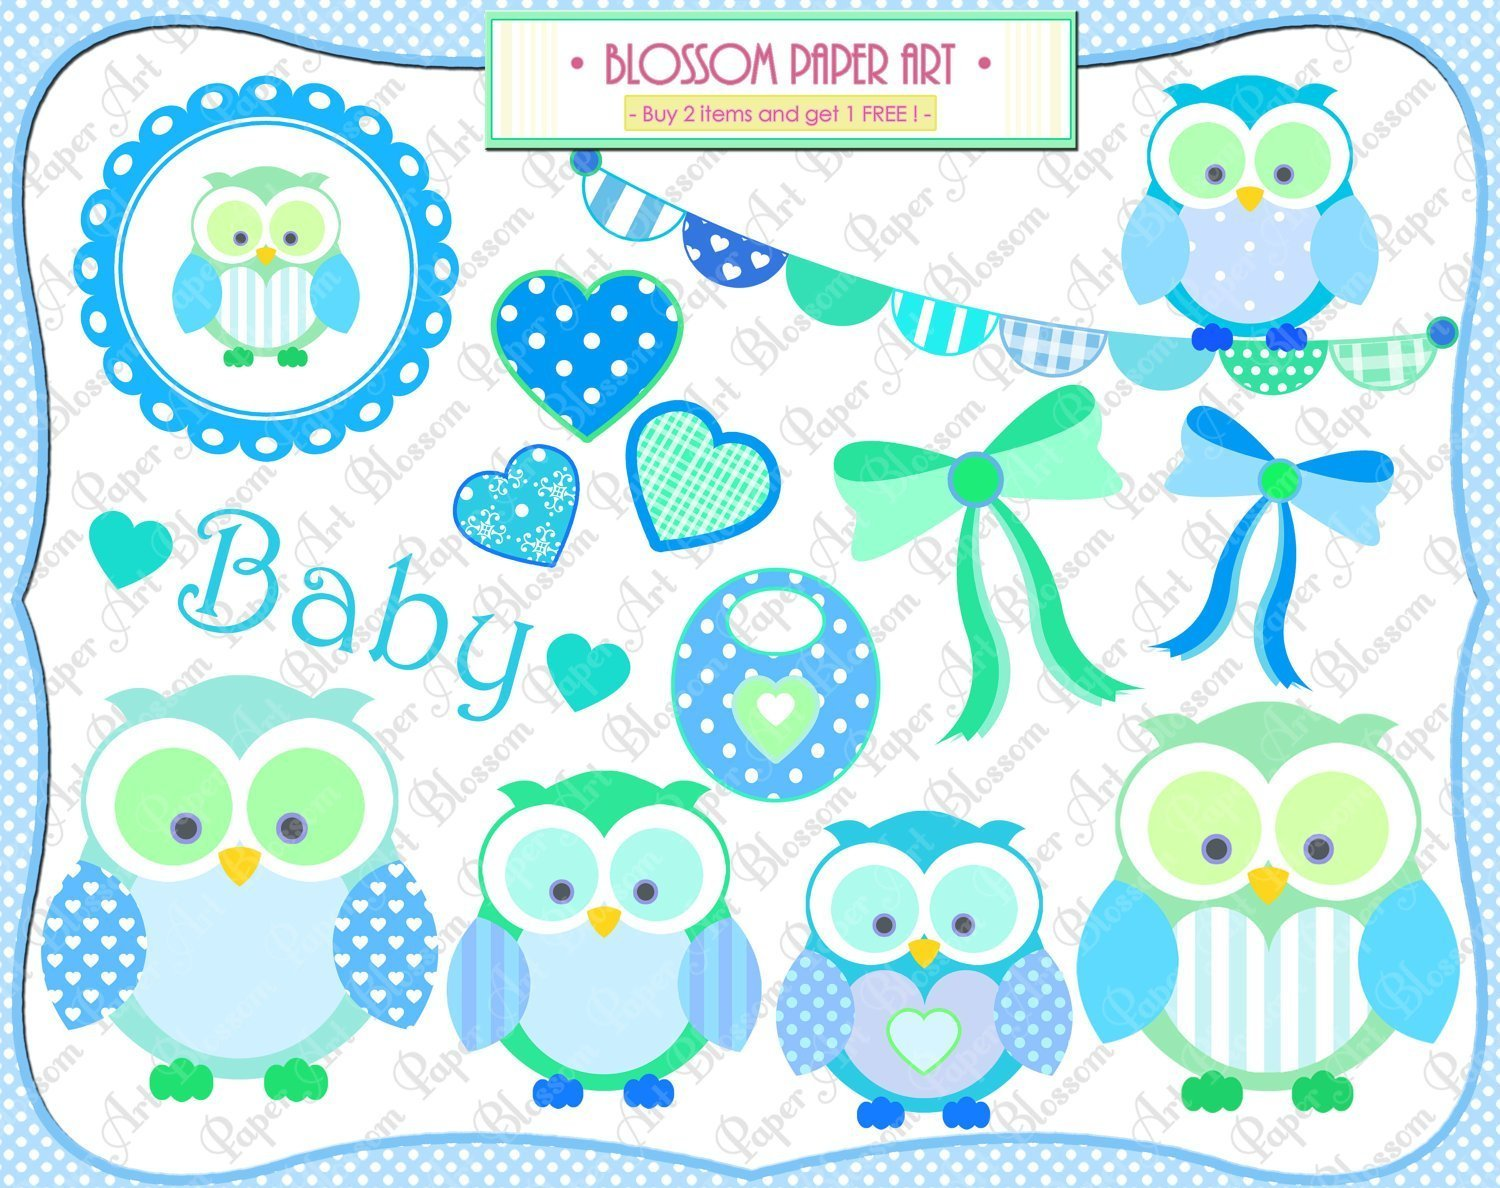 Teal owl baby shower clipart image library download Free Diy Girl Baby Showers Owls Clipart Library Stock Rr ... image library download